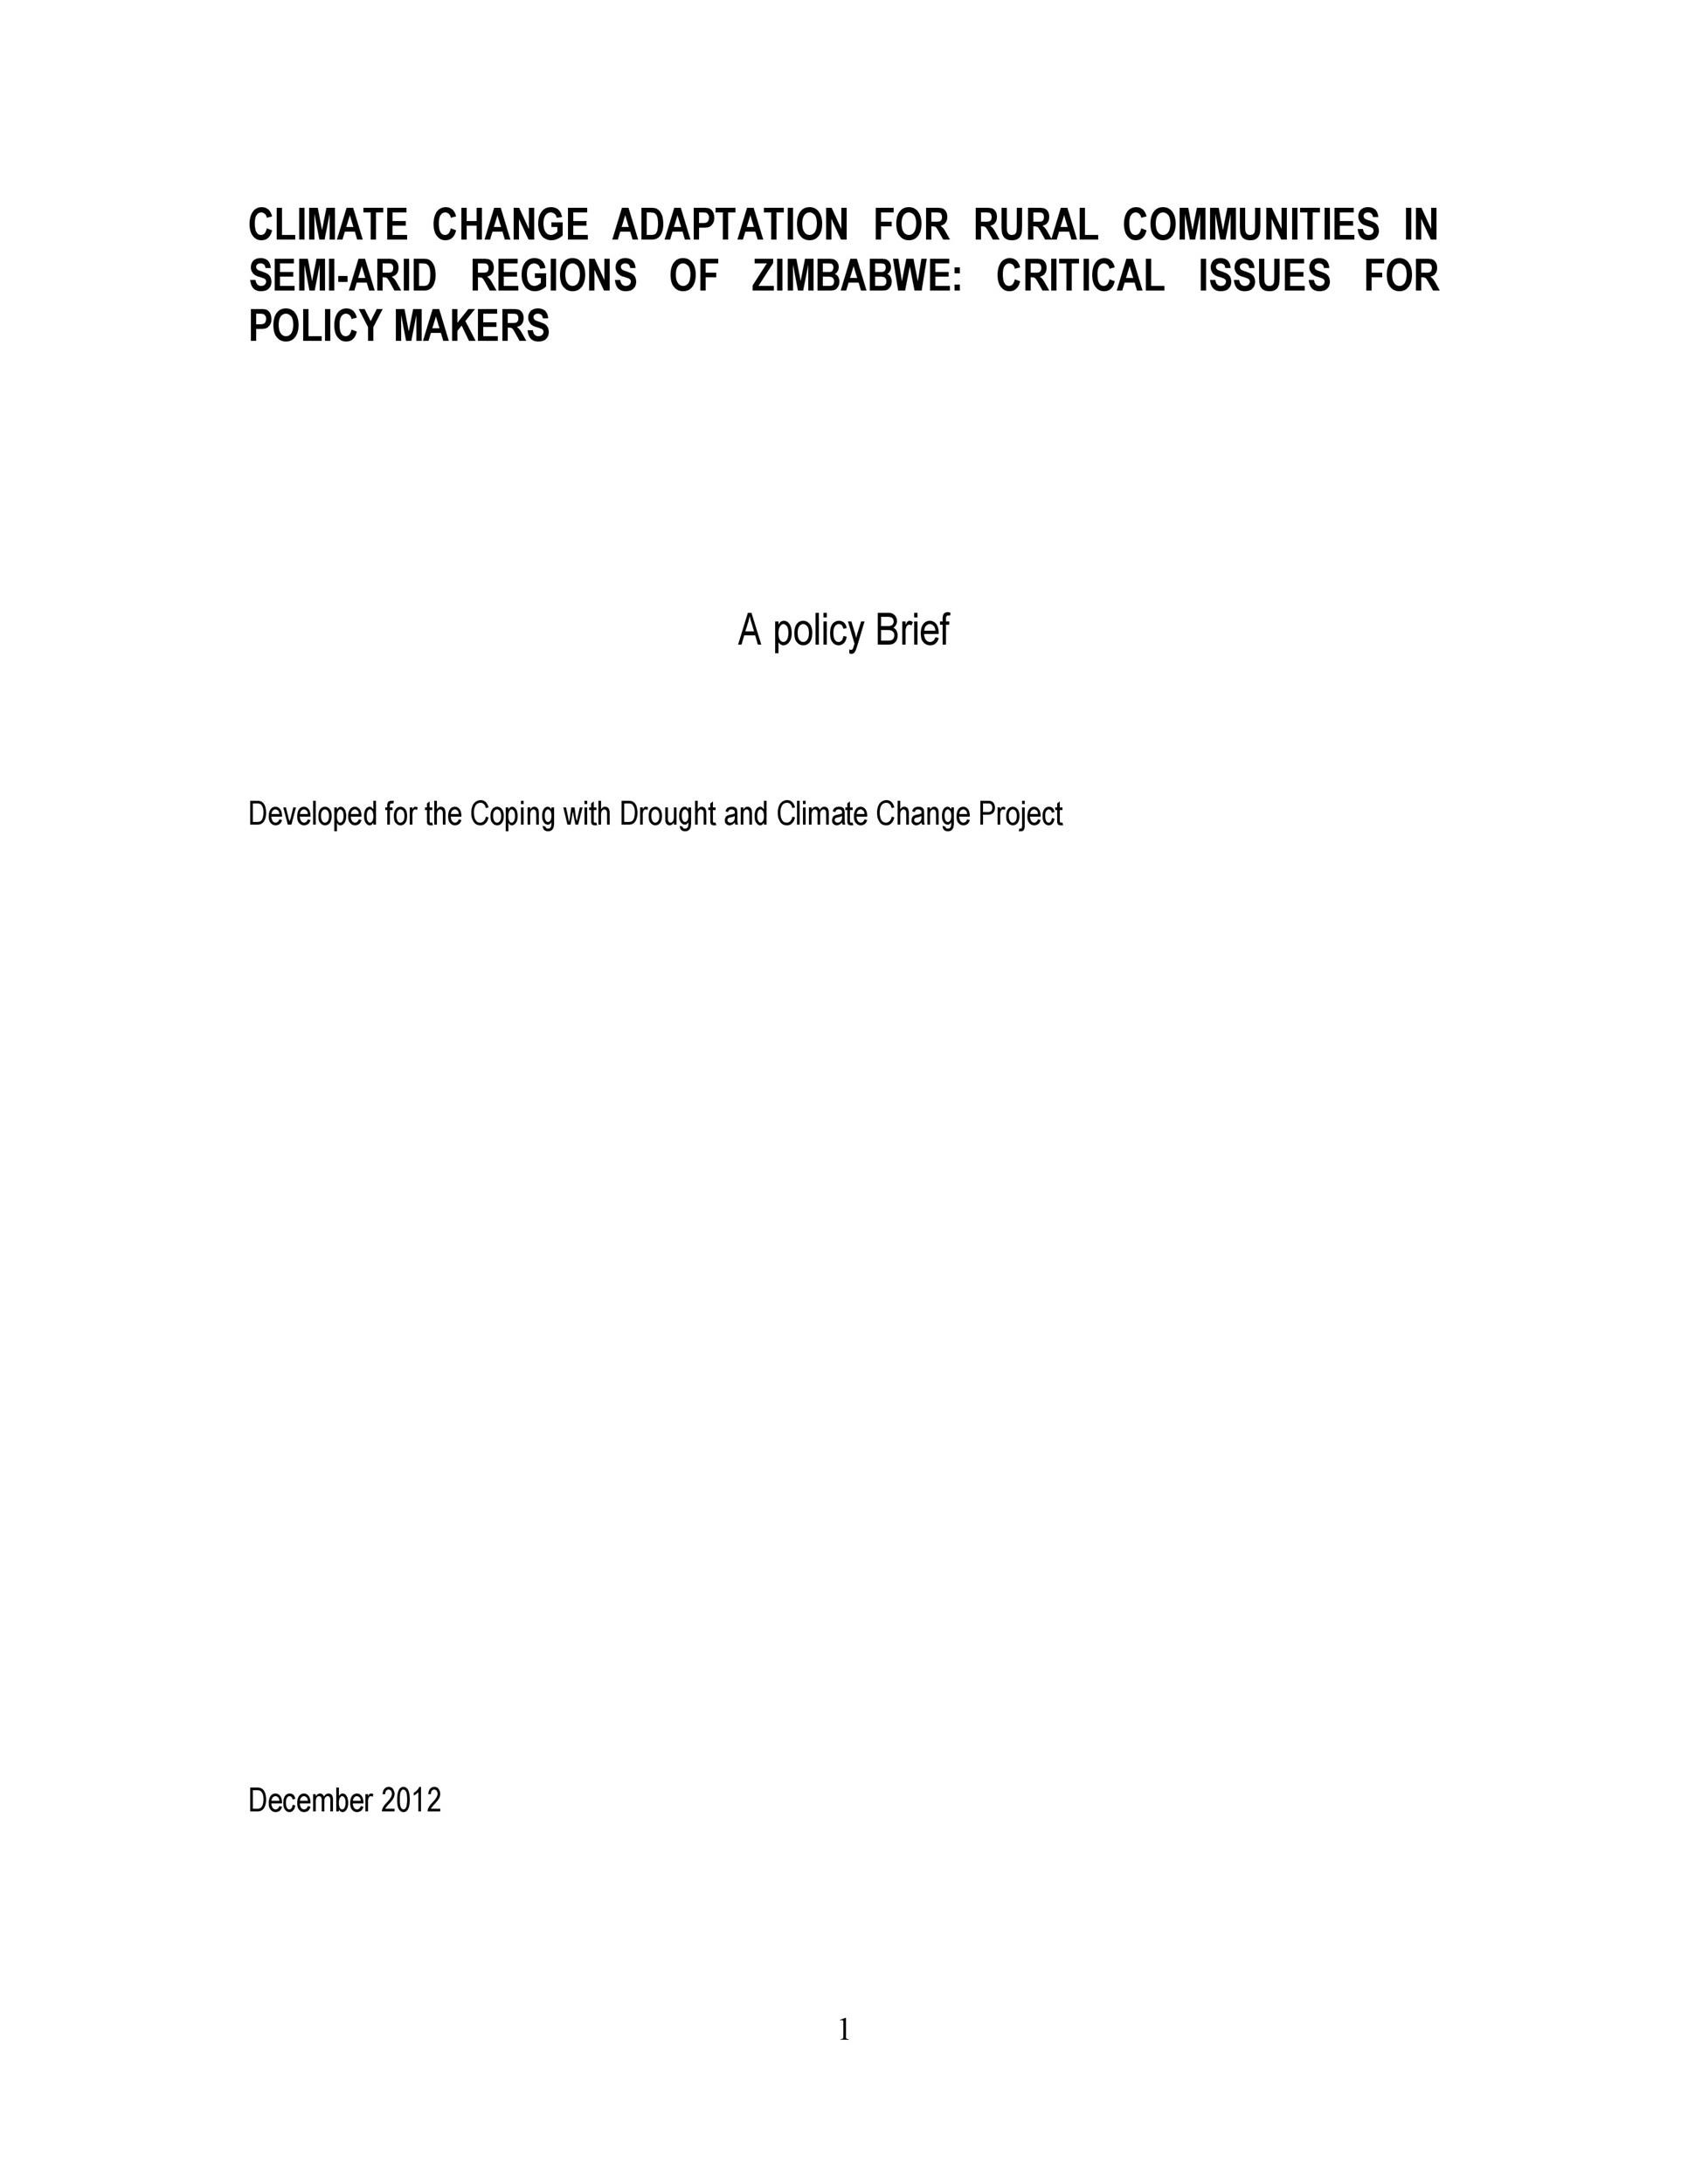 Free policy brief template 22